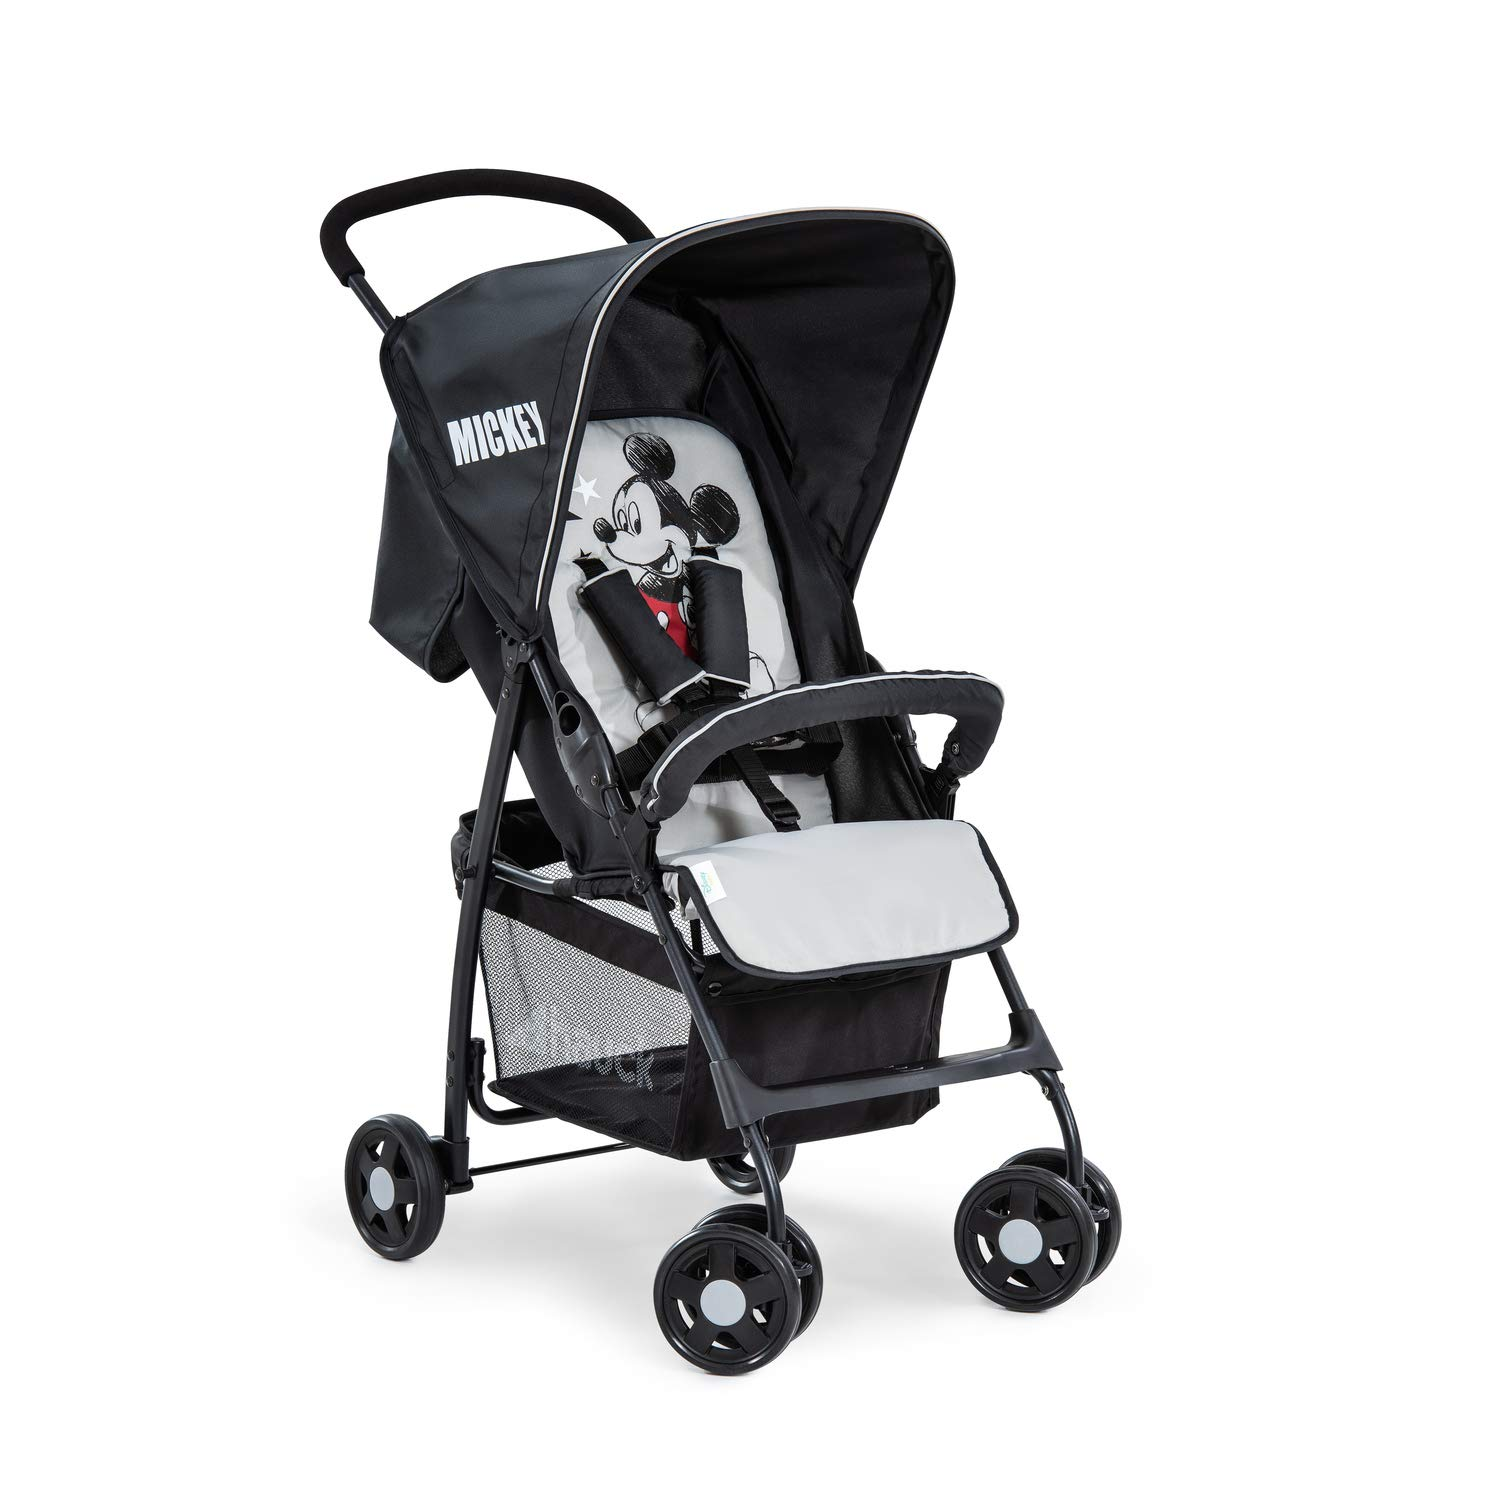 Hauck Disney Sun Plus Buggy Pushchair Stroller With Canopy 6 Months To 15kg